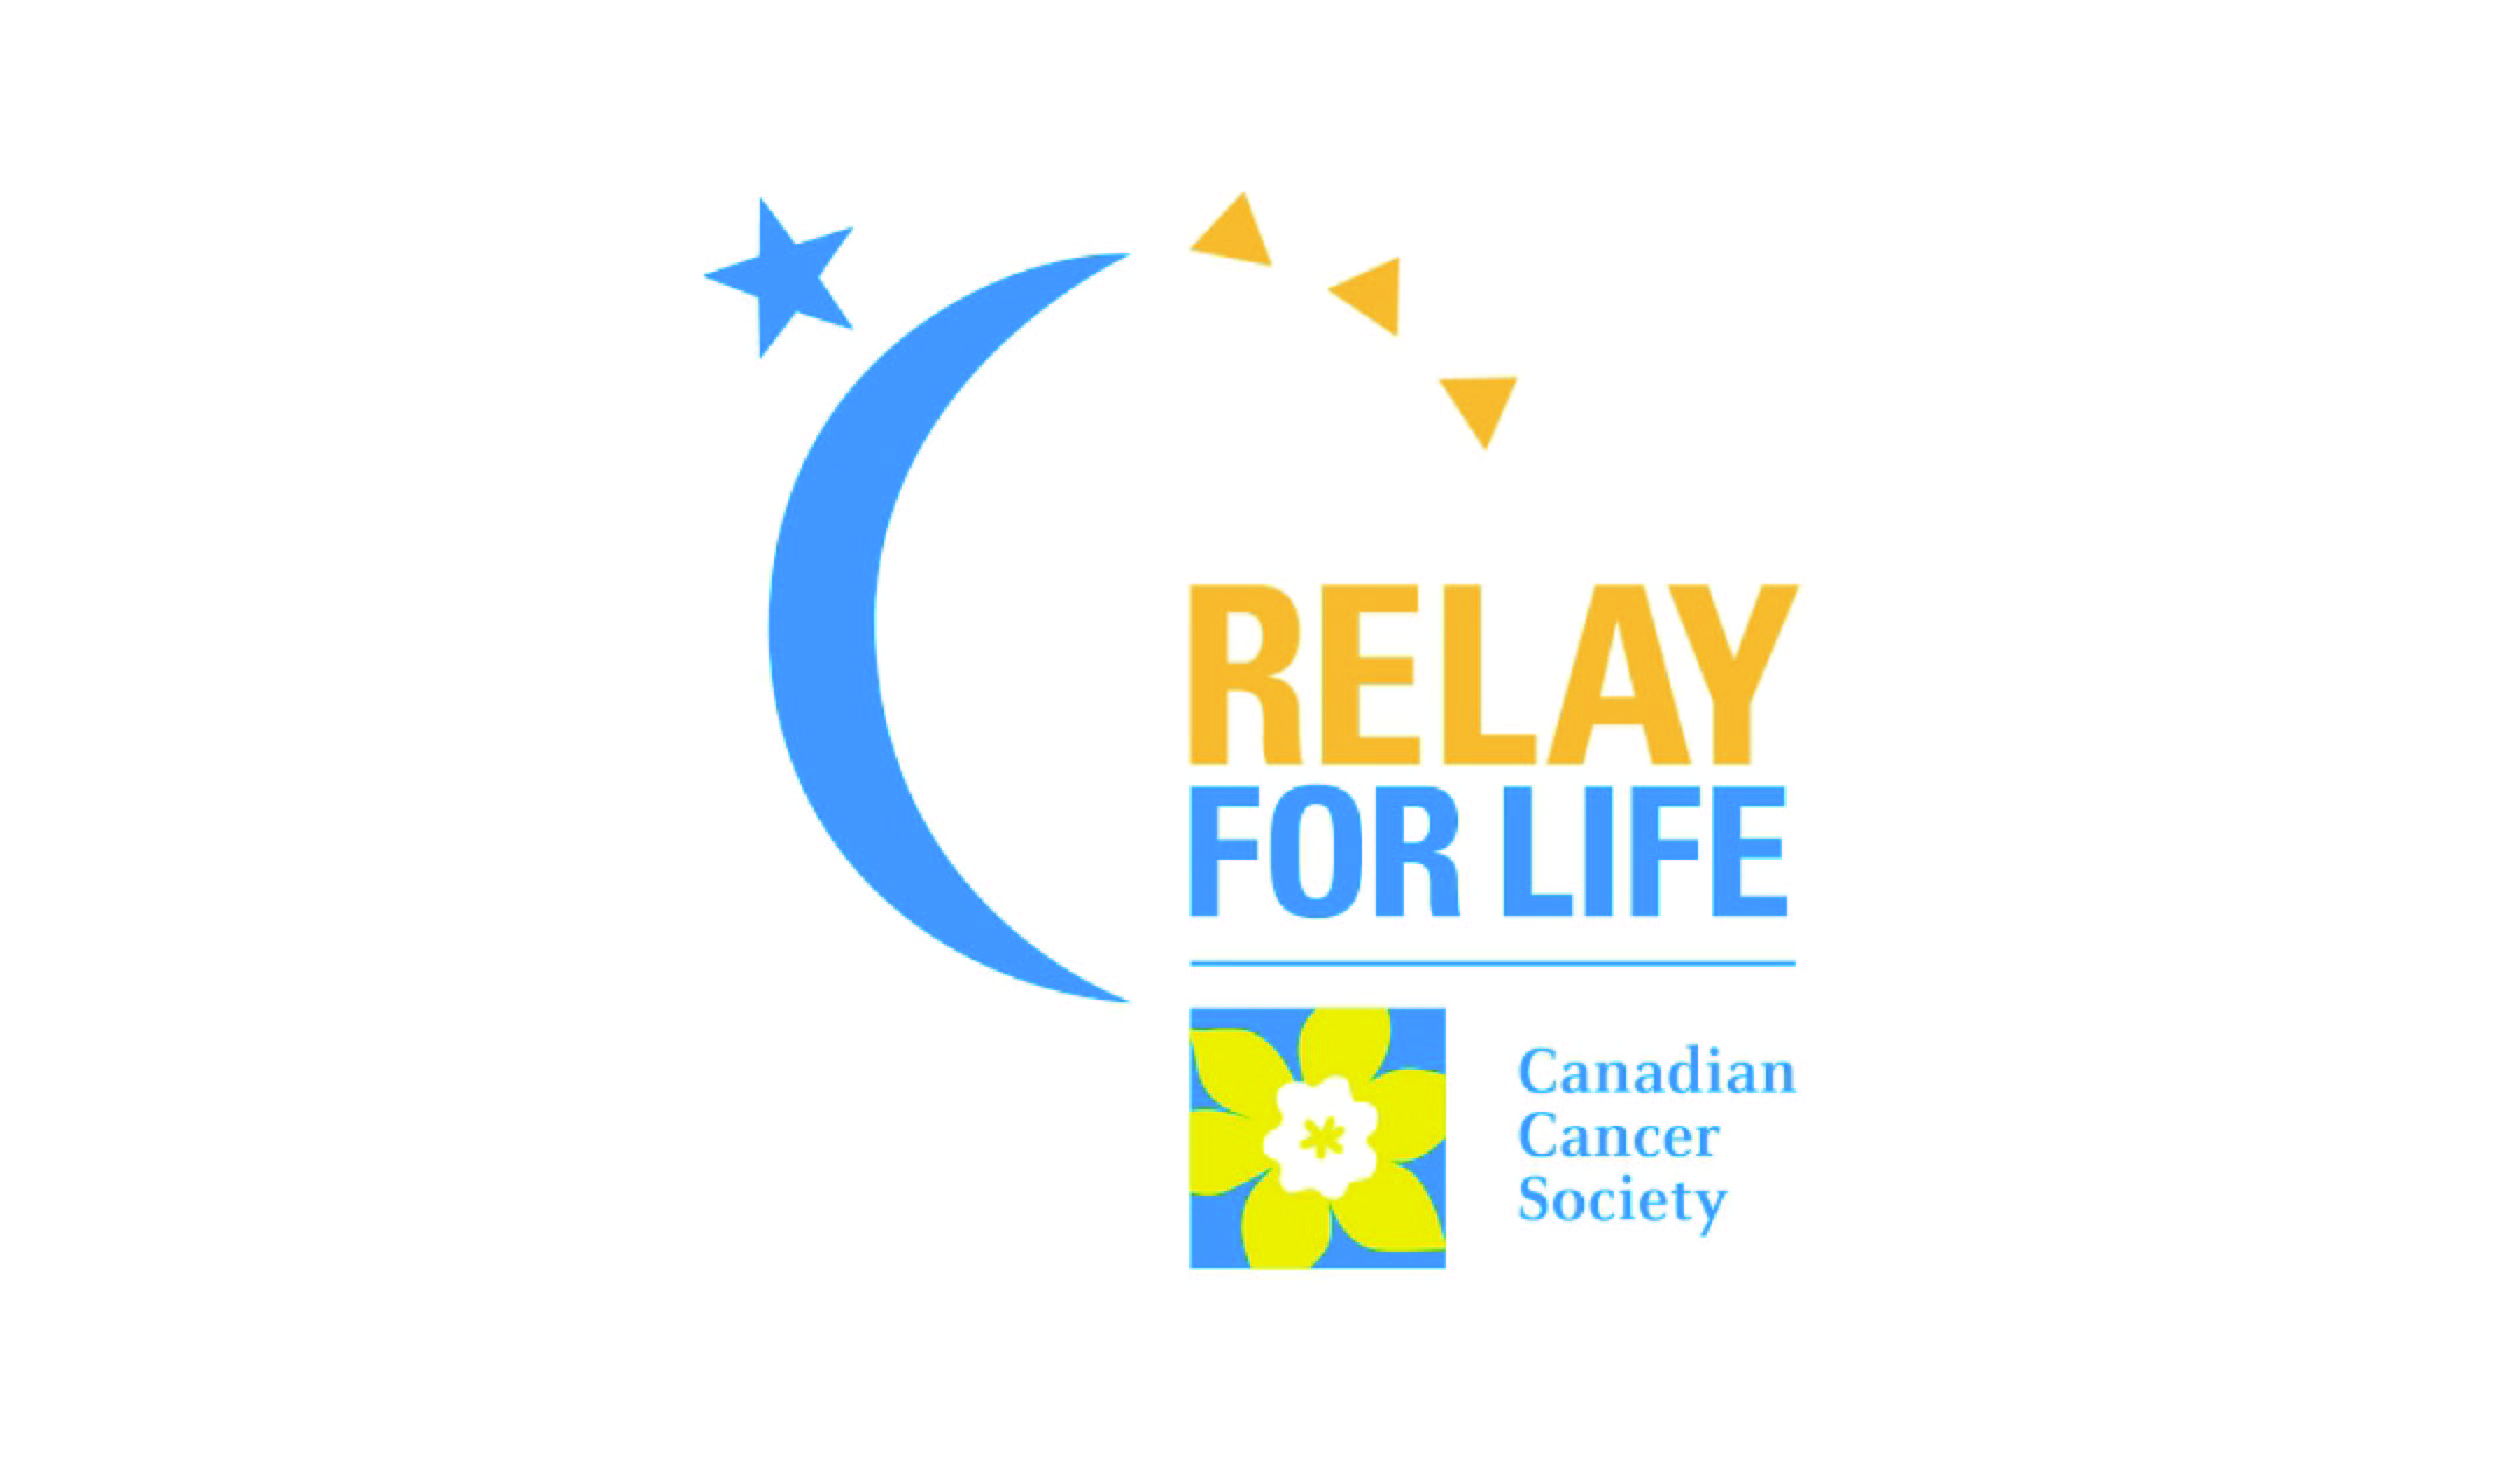 RELAY-FOR-LIFE-GIVING-BACK.JPG